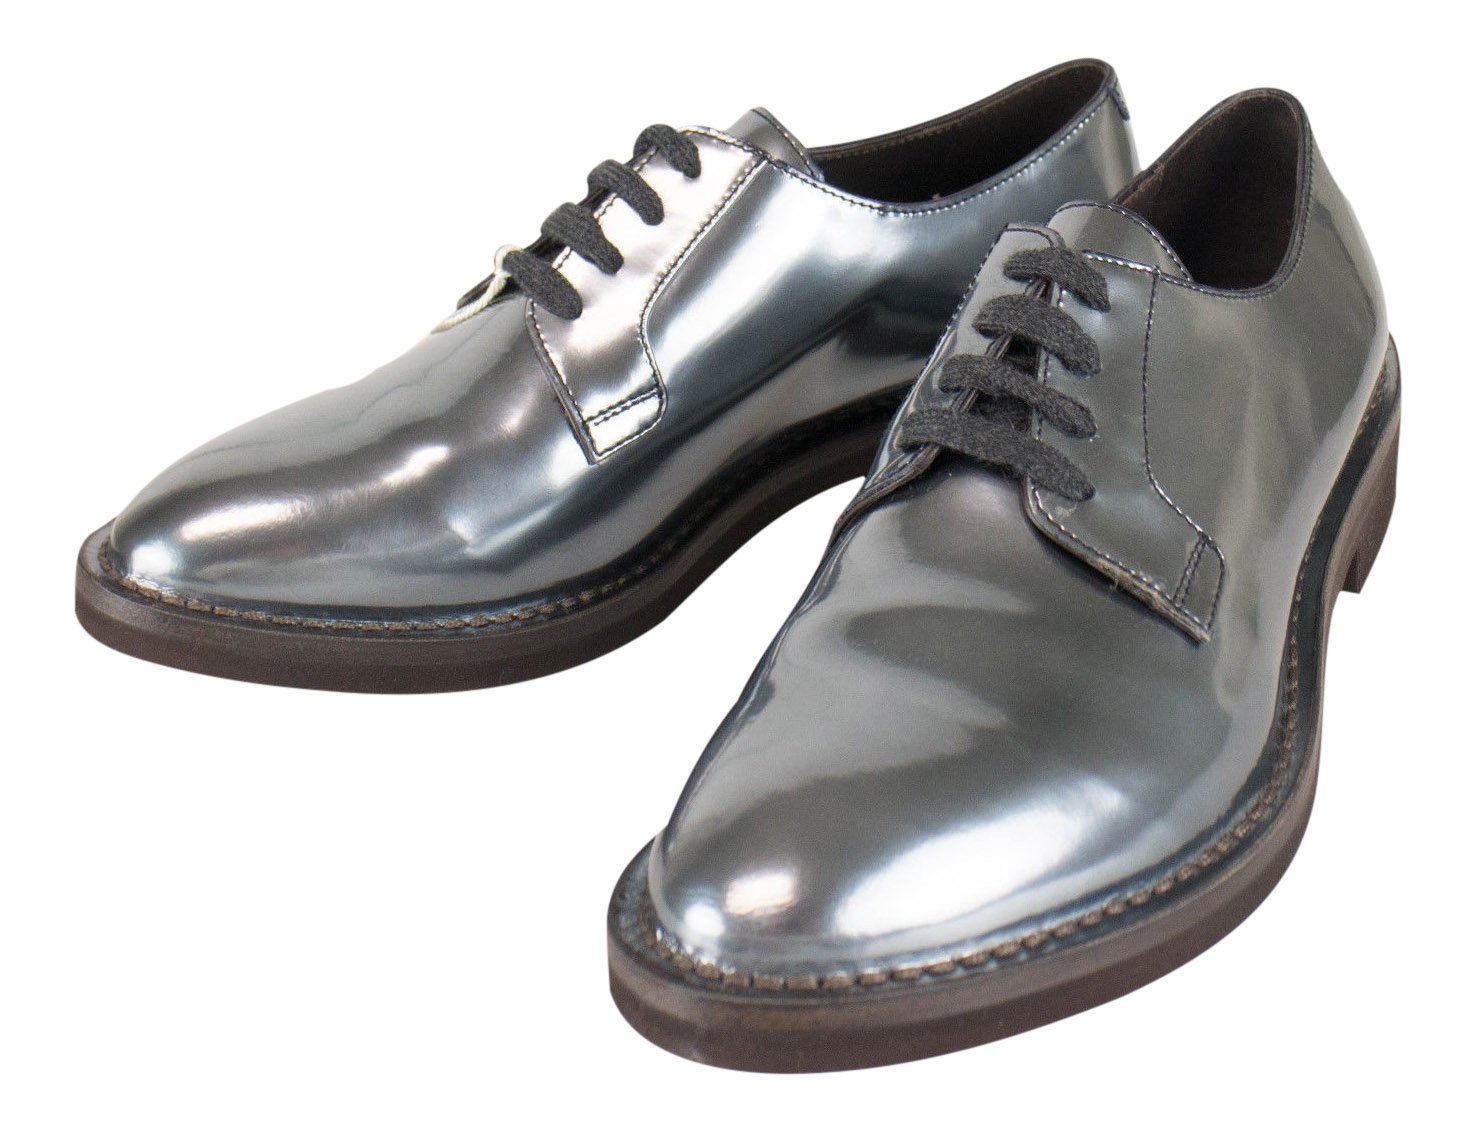 ed625538588ed5 Get Quotations · Brunello Cucinelli Gray Patent Leather Oxford Shoes Size  38.5 8.5